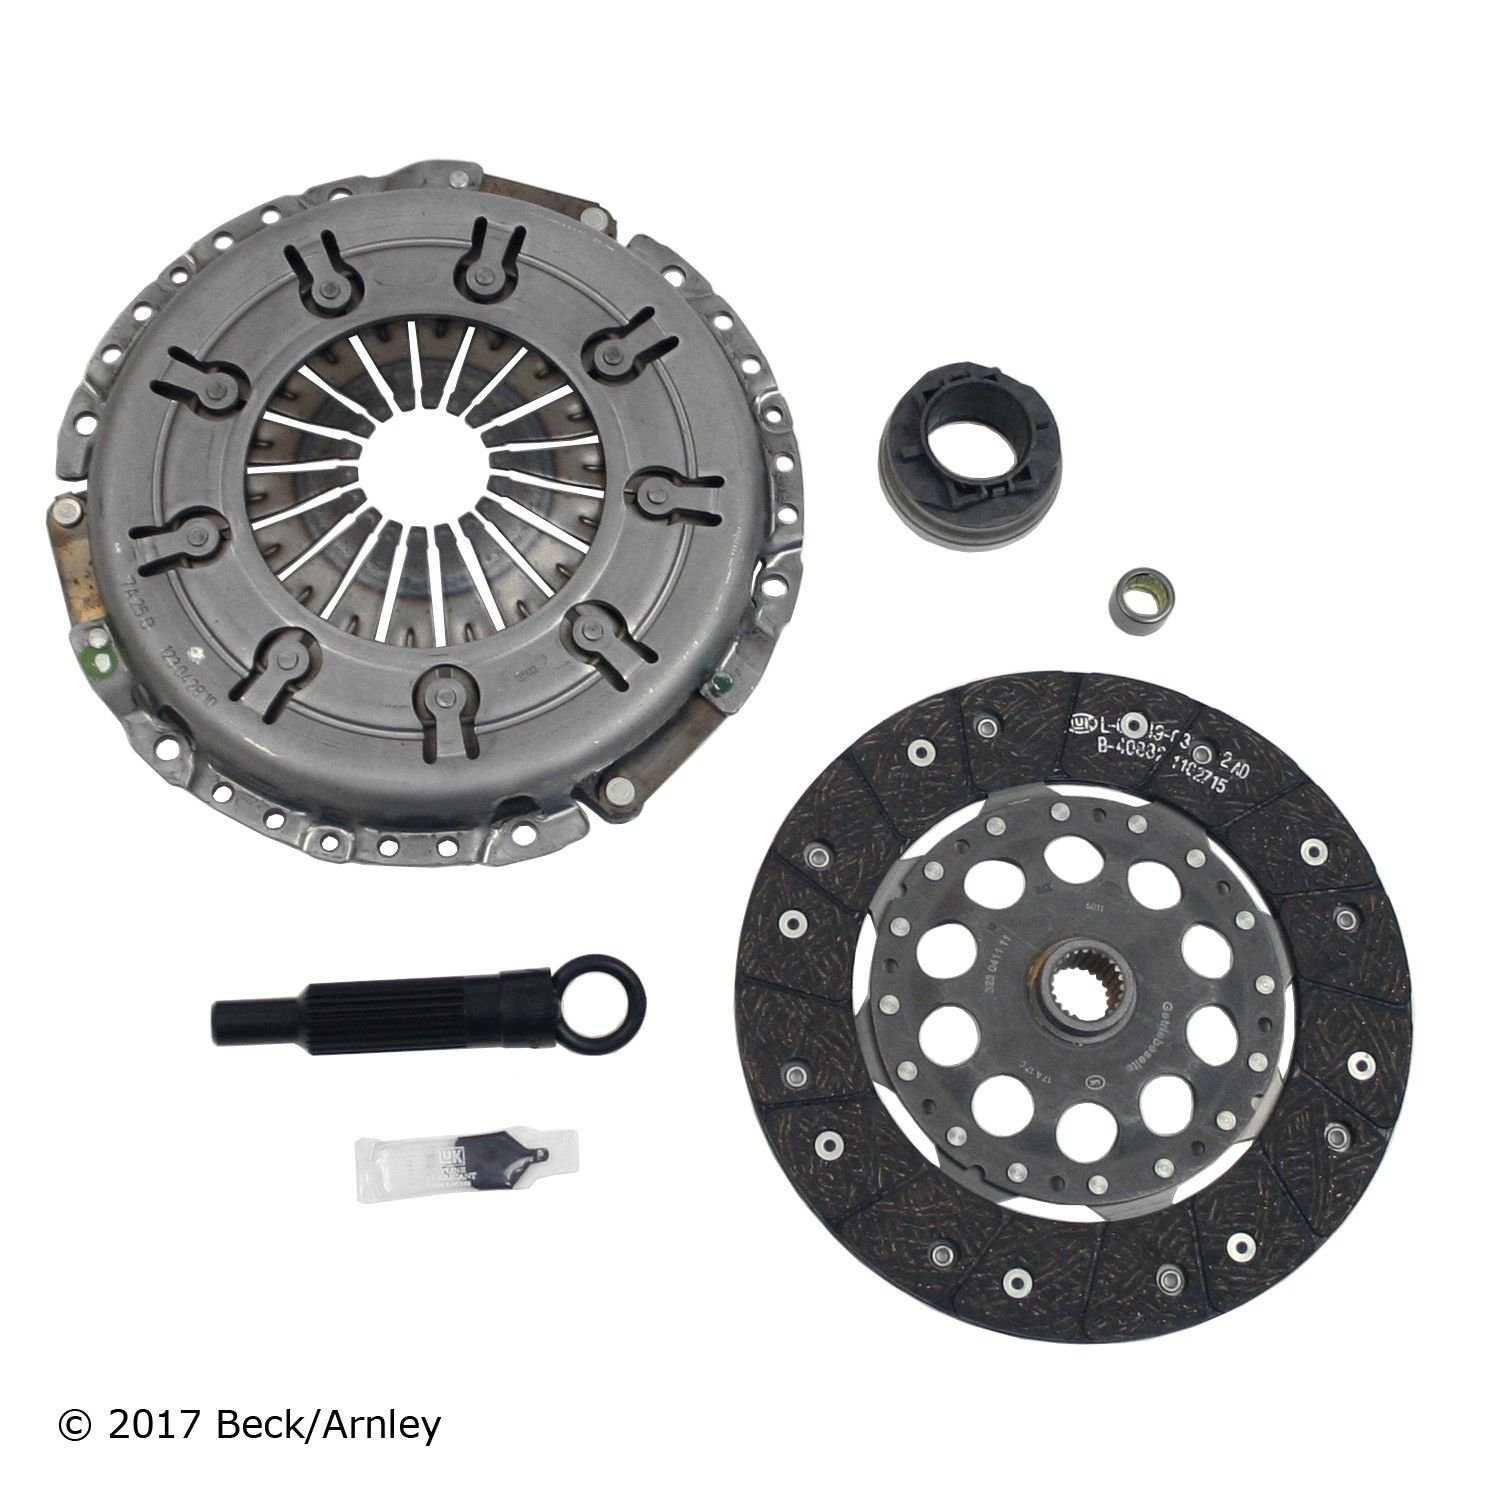 1997 Audi A4 Quattro Clutch Kit 4 Cyl 18L Beck Arnley 061 9364 NEW Original Replacement Service Set Flywheel Not Included DIAMETER INCHES 9 SPLINE